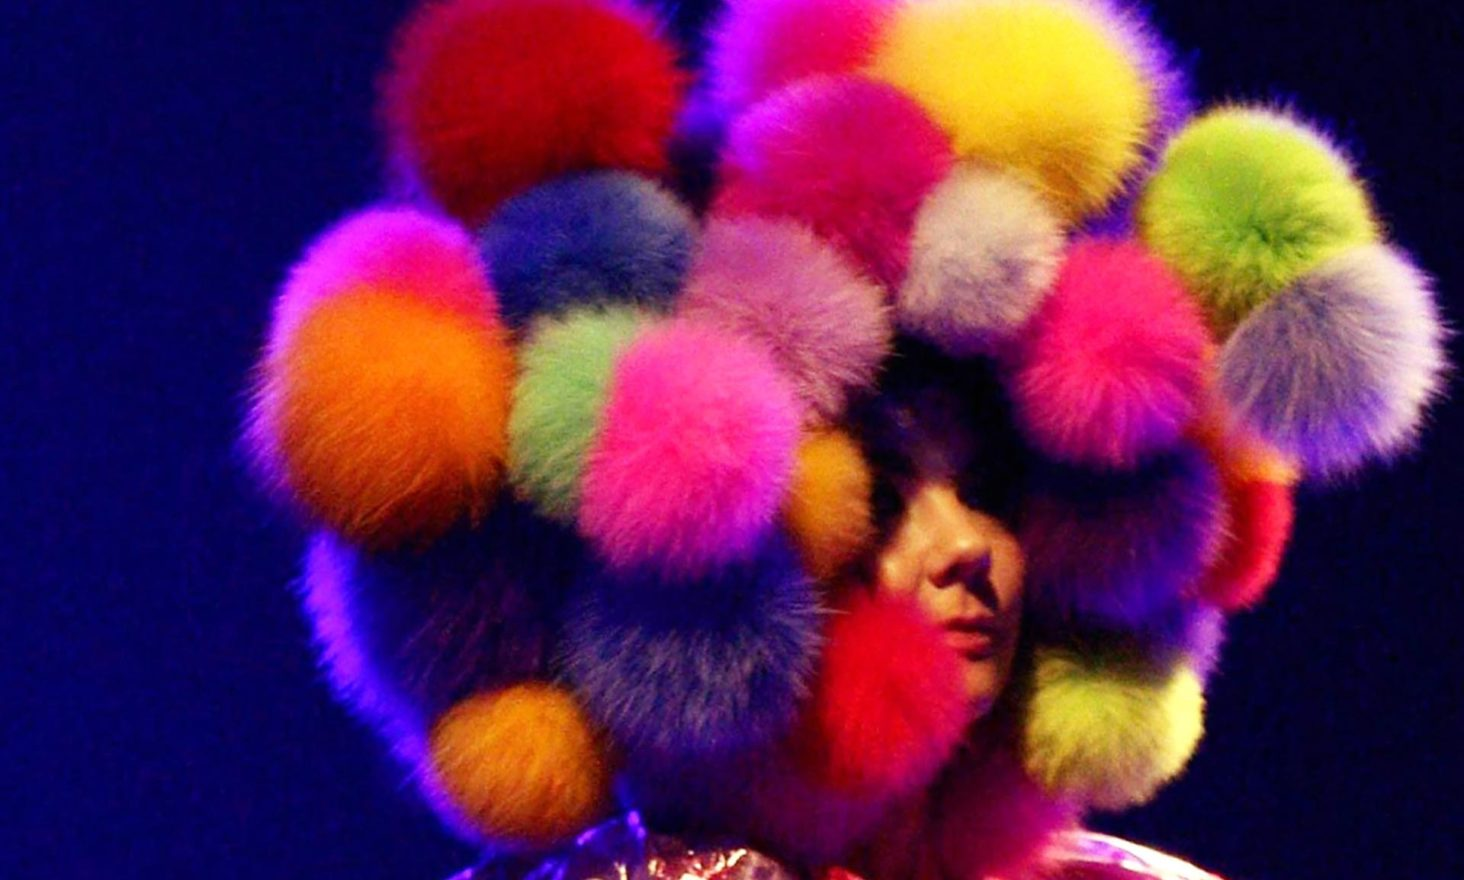 Bjork Partners With Blockpool On Album Release But Skepticism Remains